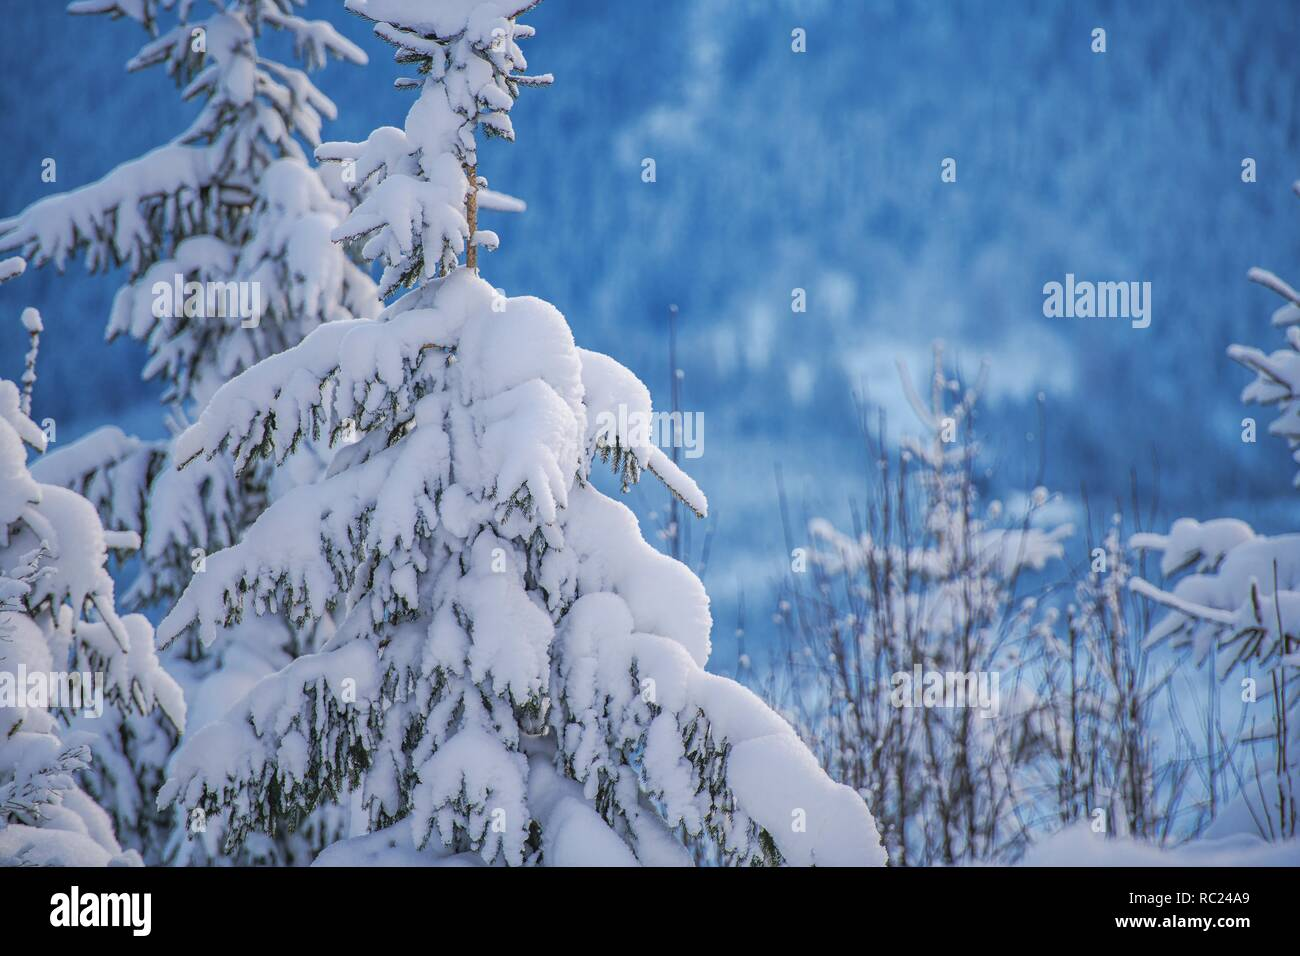 Winter Mountains Foliage. Young Spruces Covered by Heavy Snow. - Stock Image